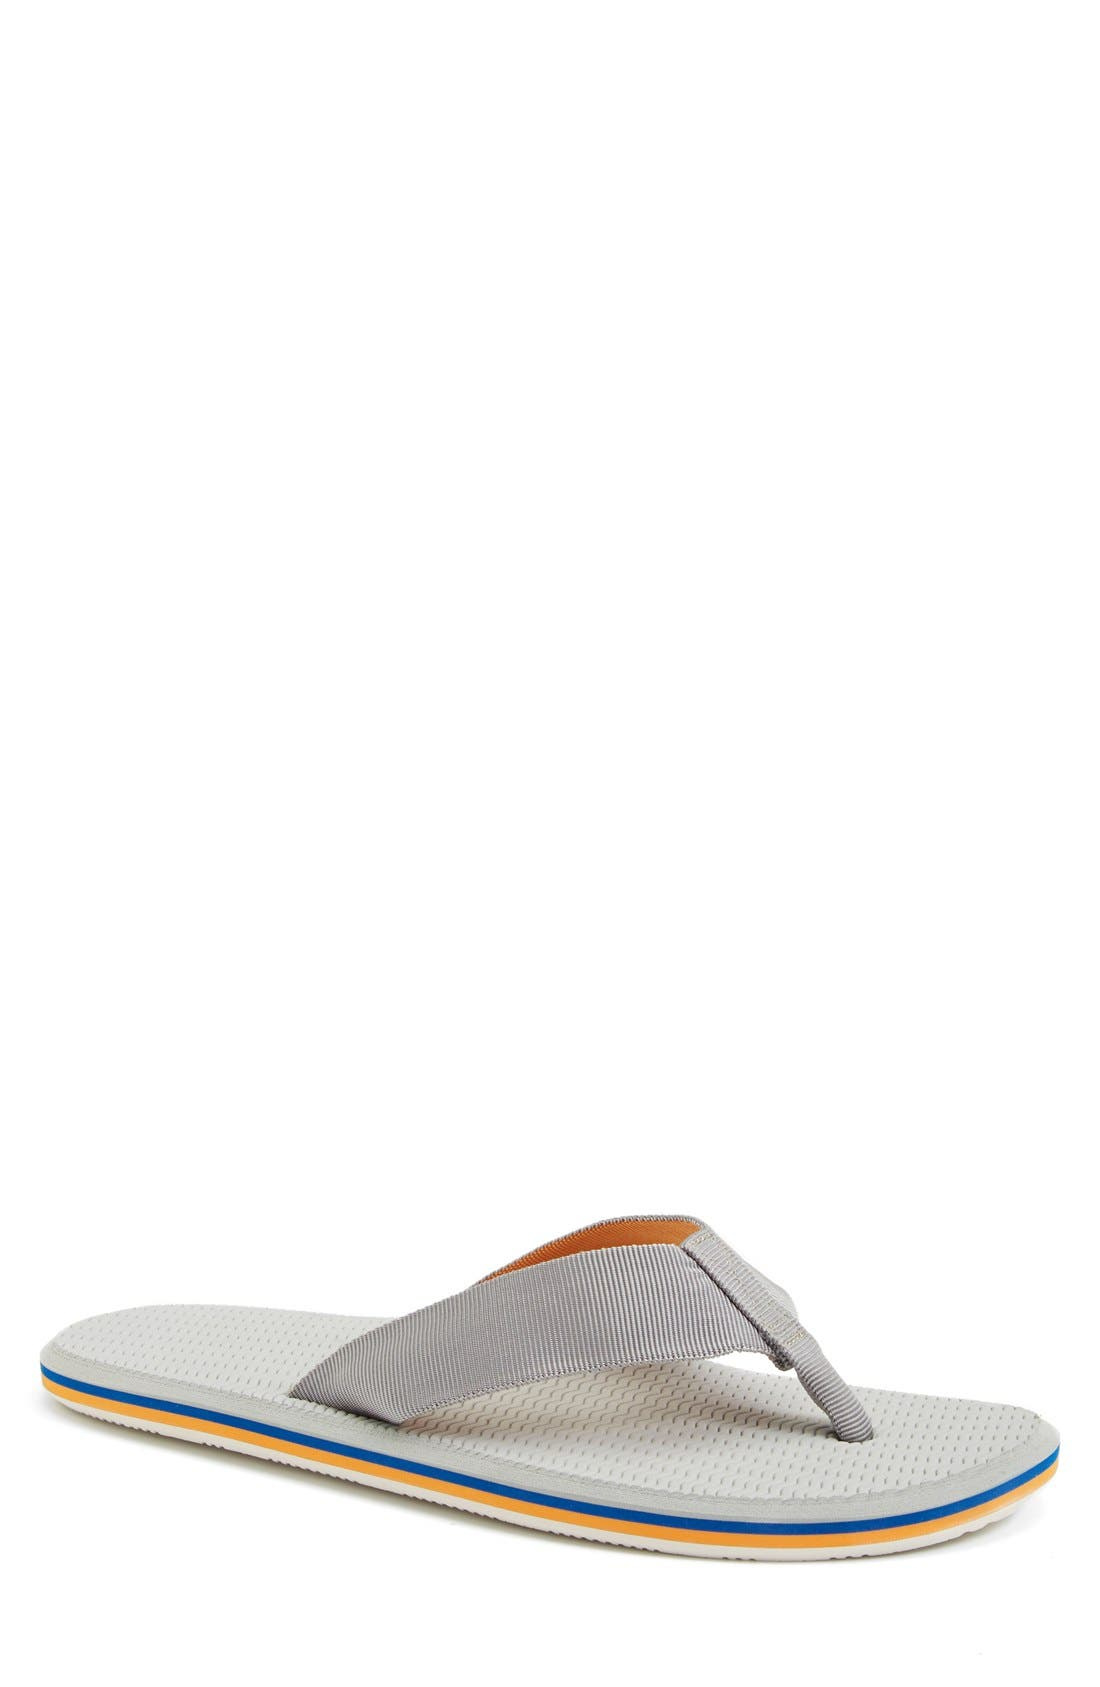 'Dunes' Flip Flop,                             Main thumbnail 1, color,                             Grey/ Blue/ Orange